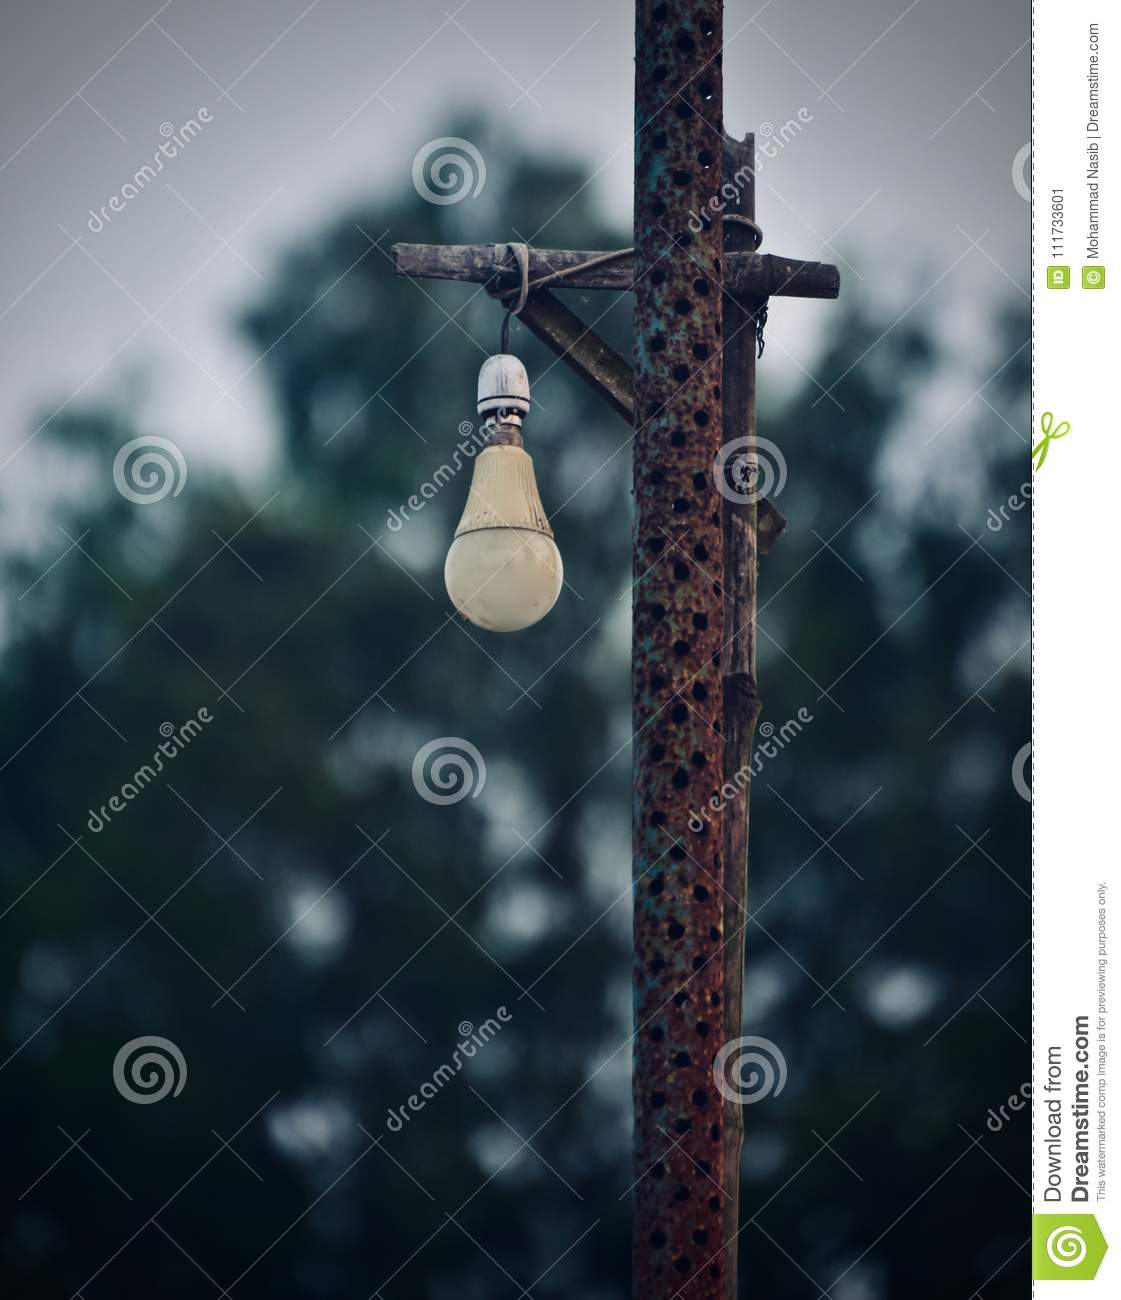 Street lamps isolated electronics object photo